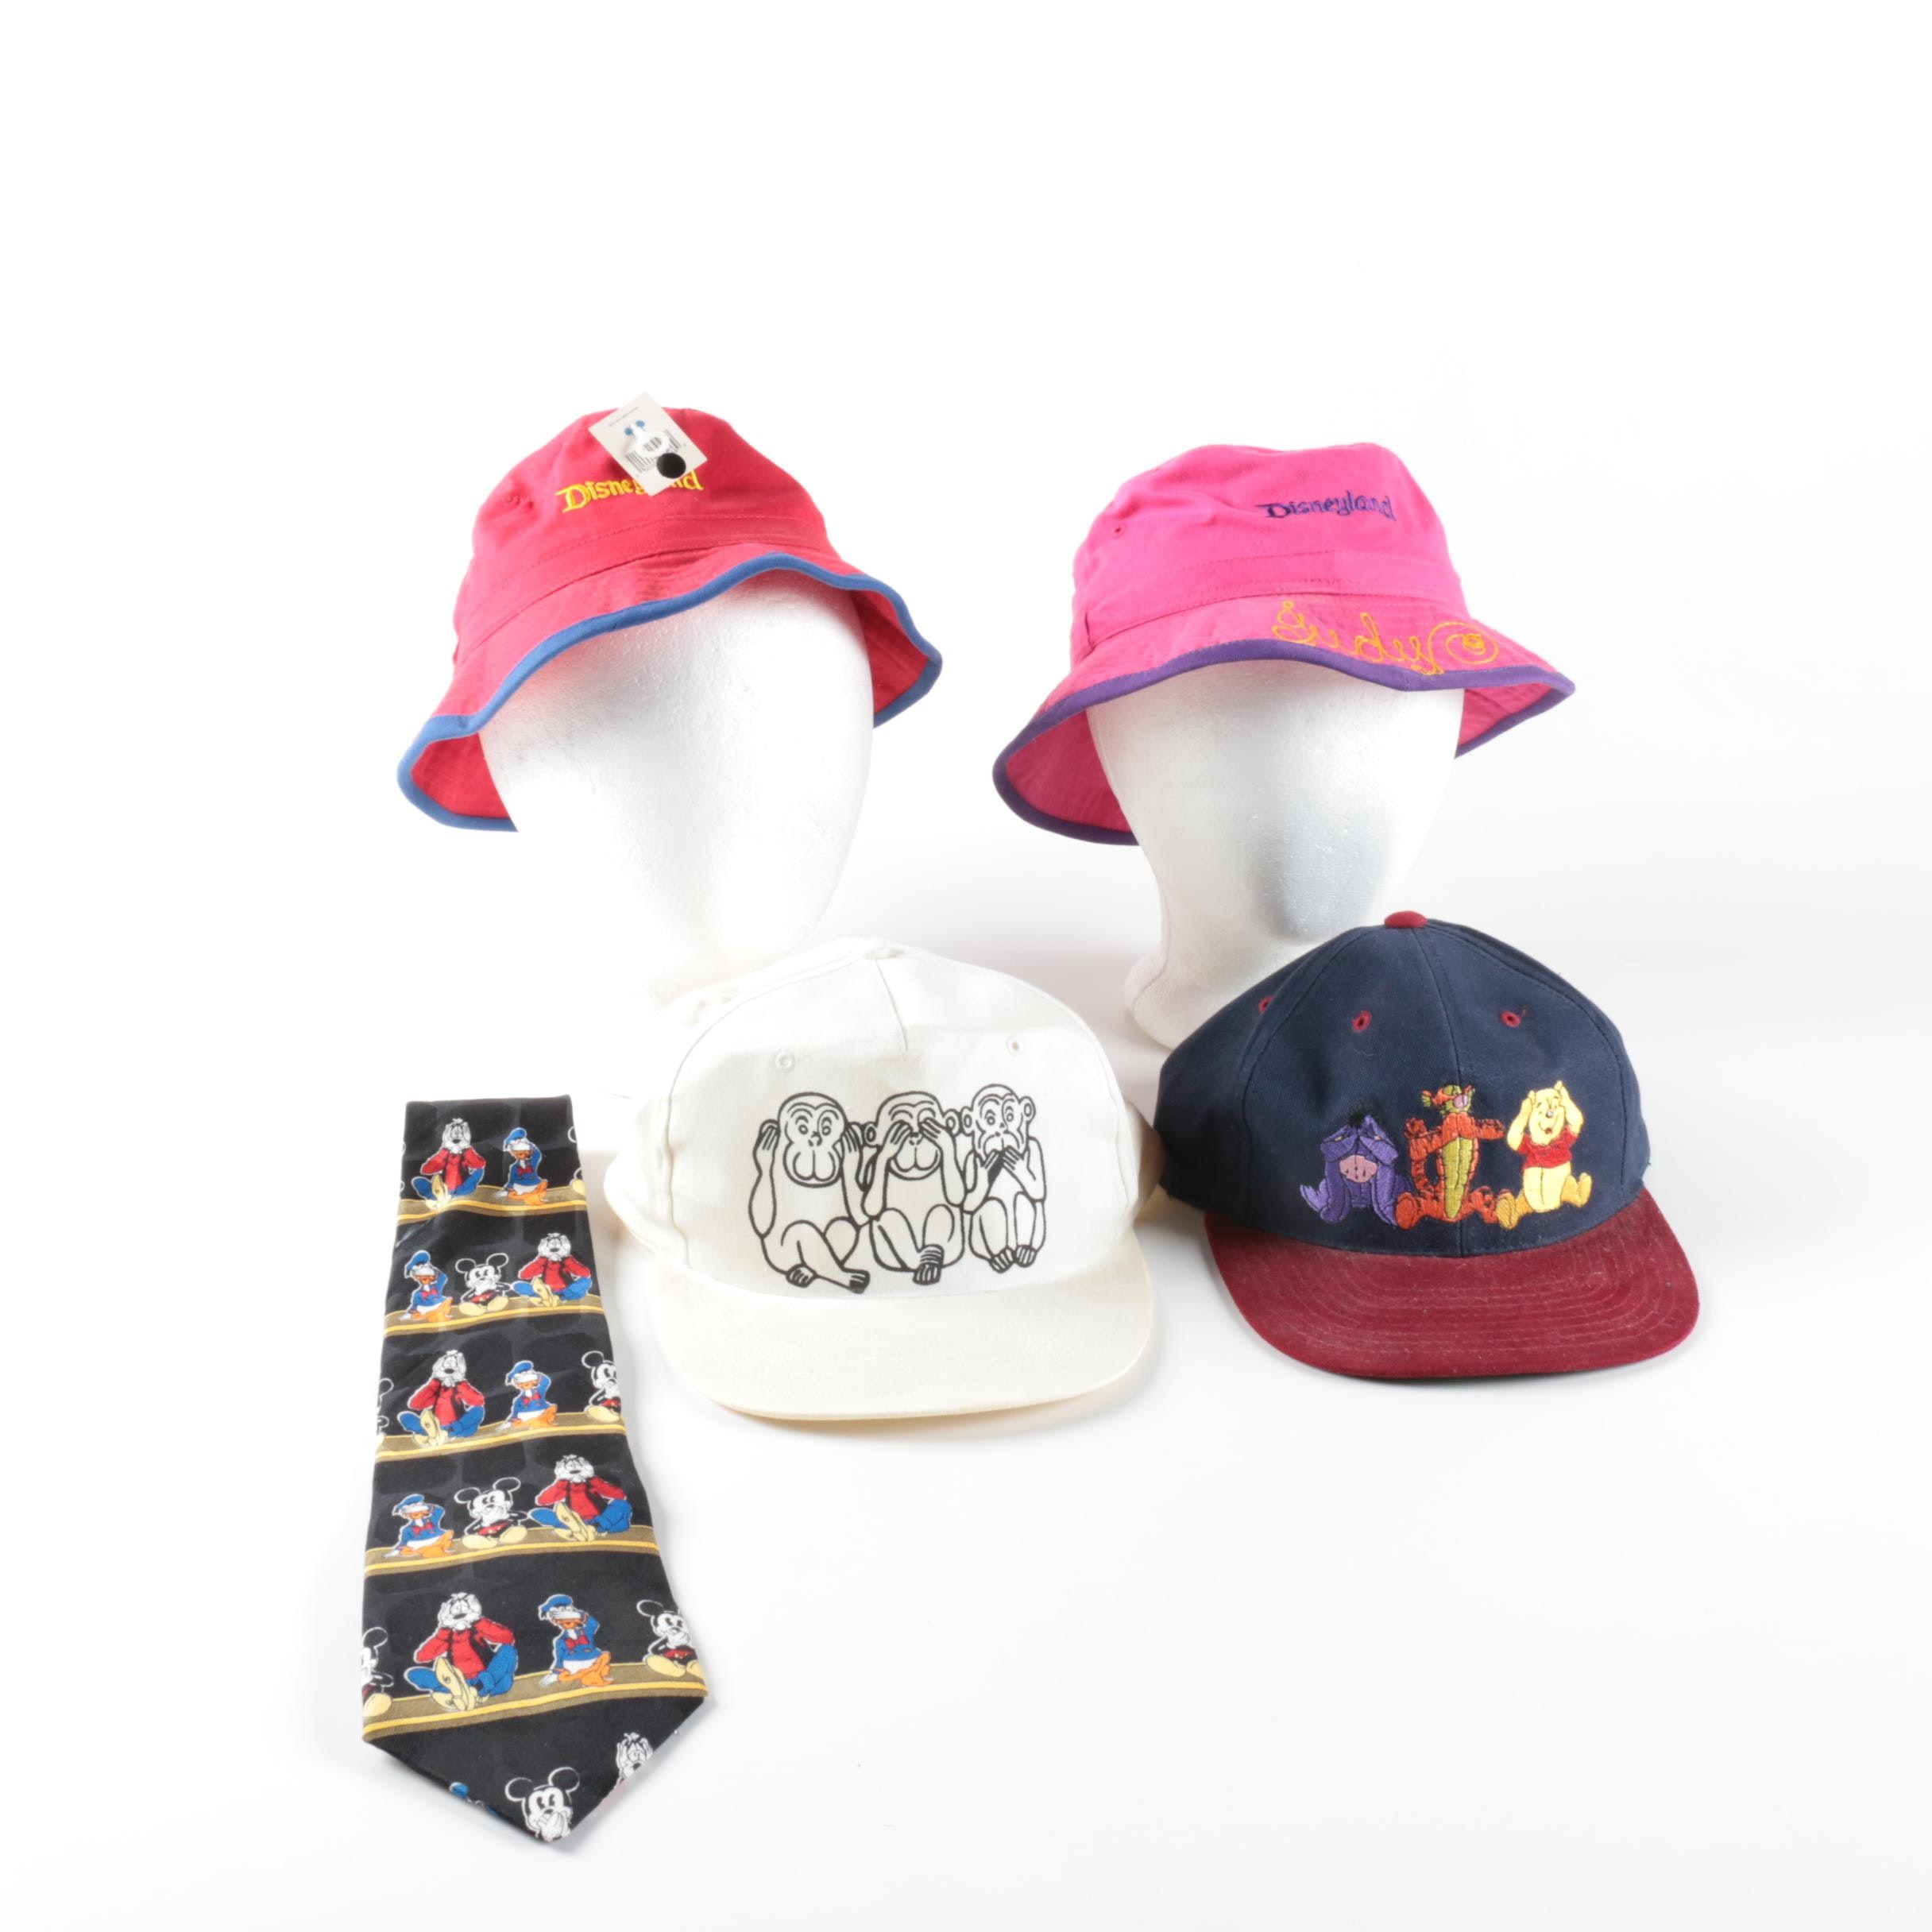 Collection of Disney Hats and Tie